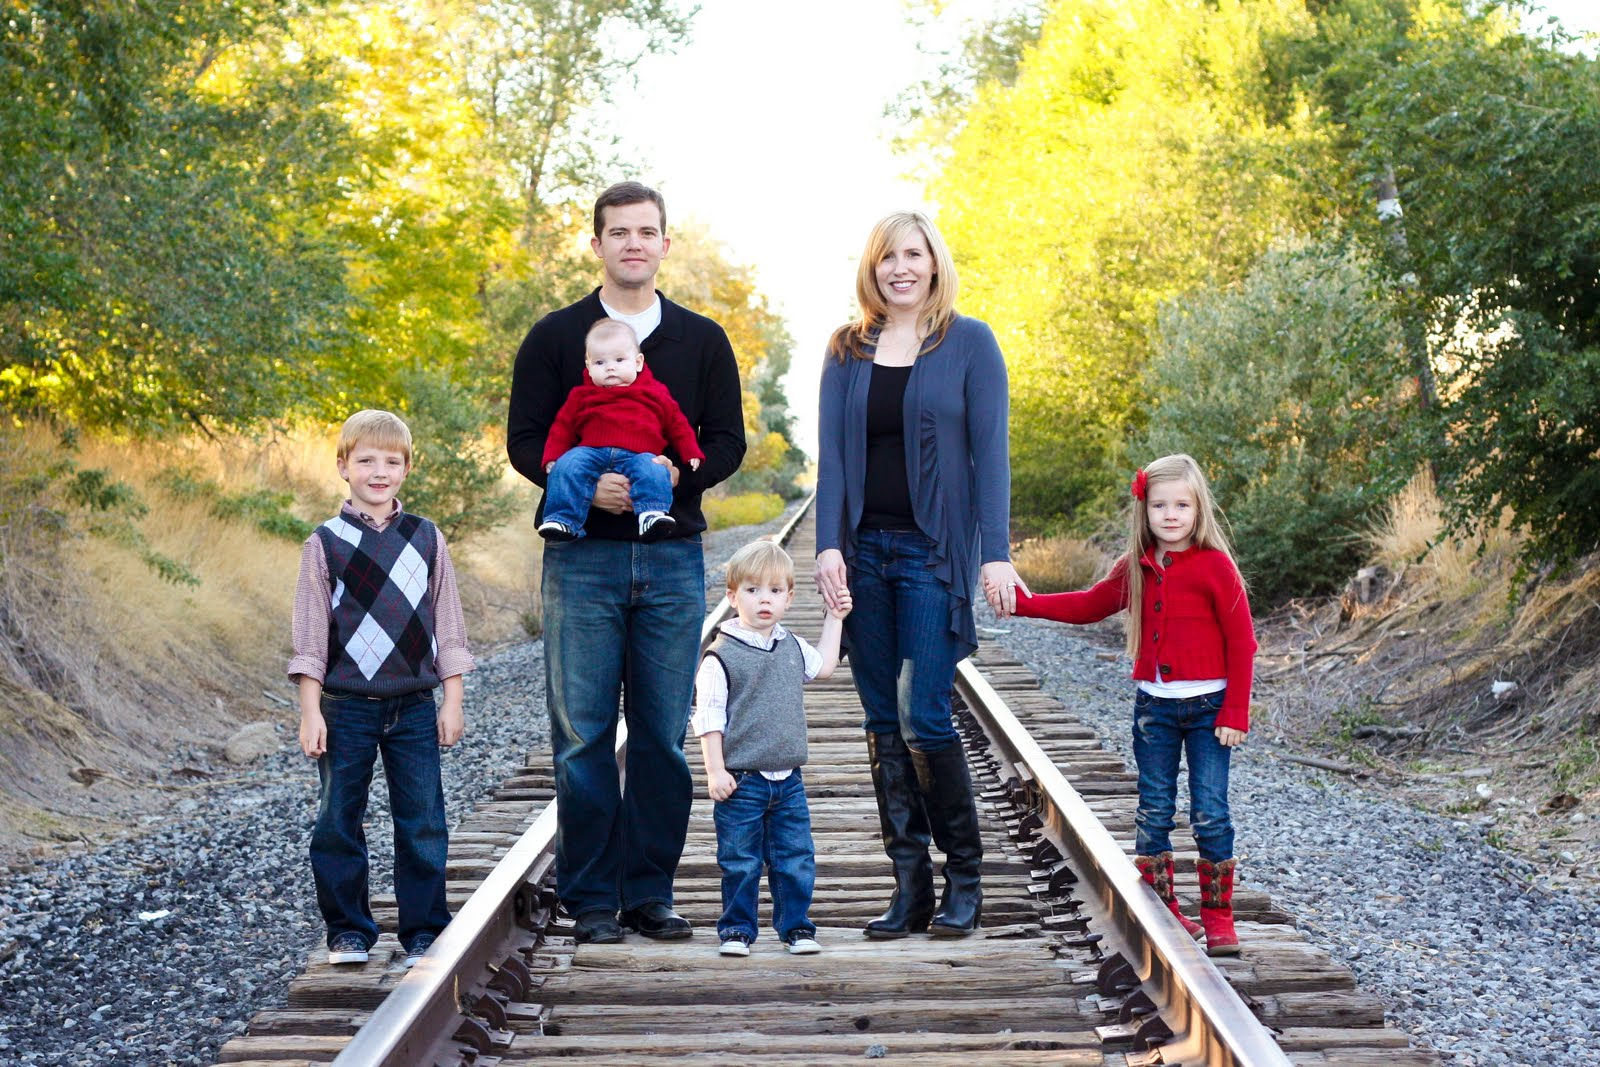 Fall Family Picture Clothing Ideas http://iwannatalkaboutbrooke.blogspot.com/2011/04/how-to-coordinate-for-family-photo.html